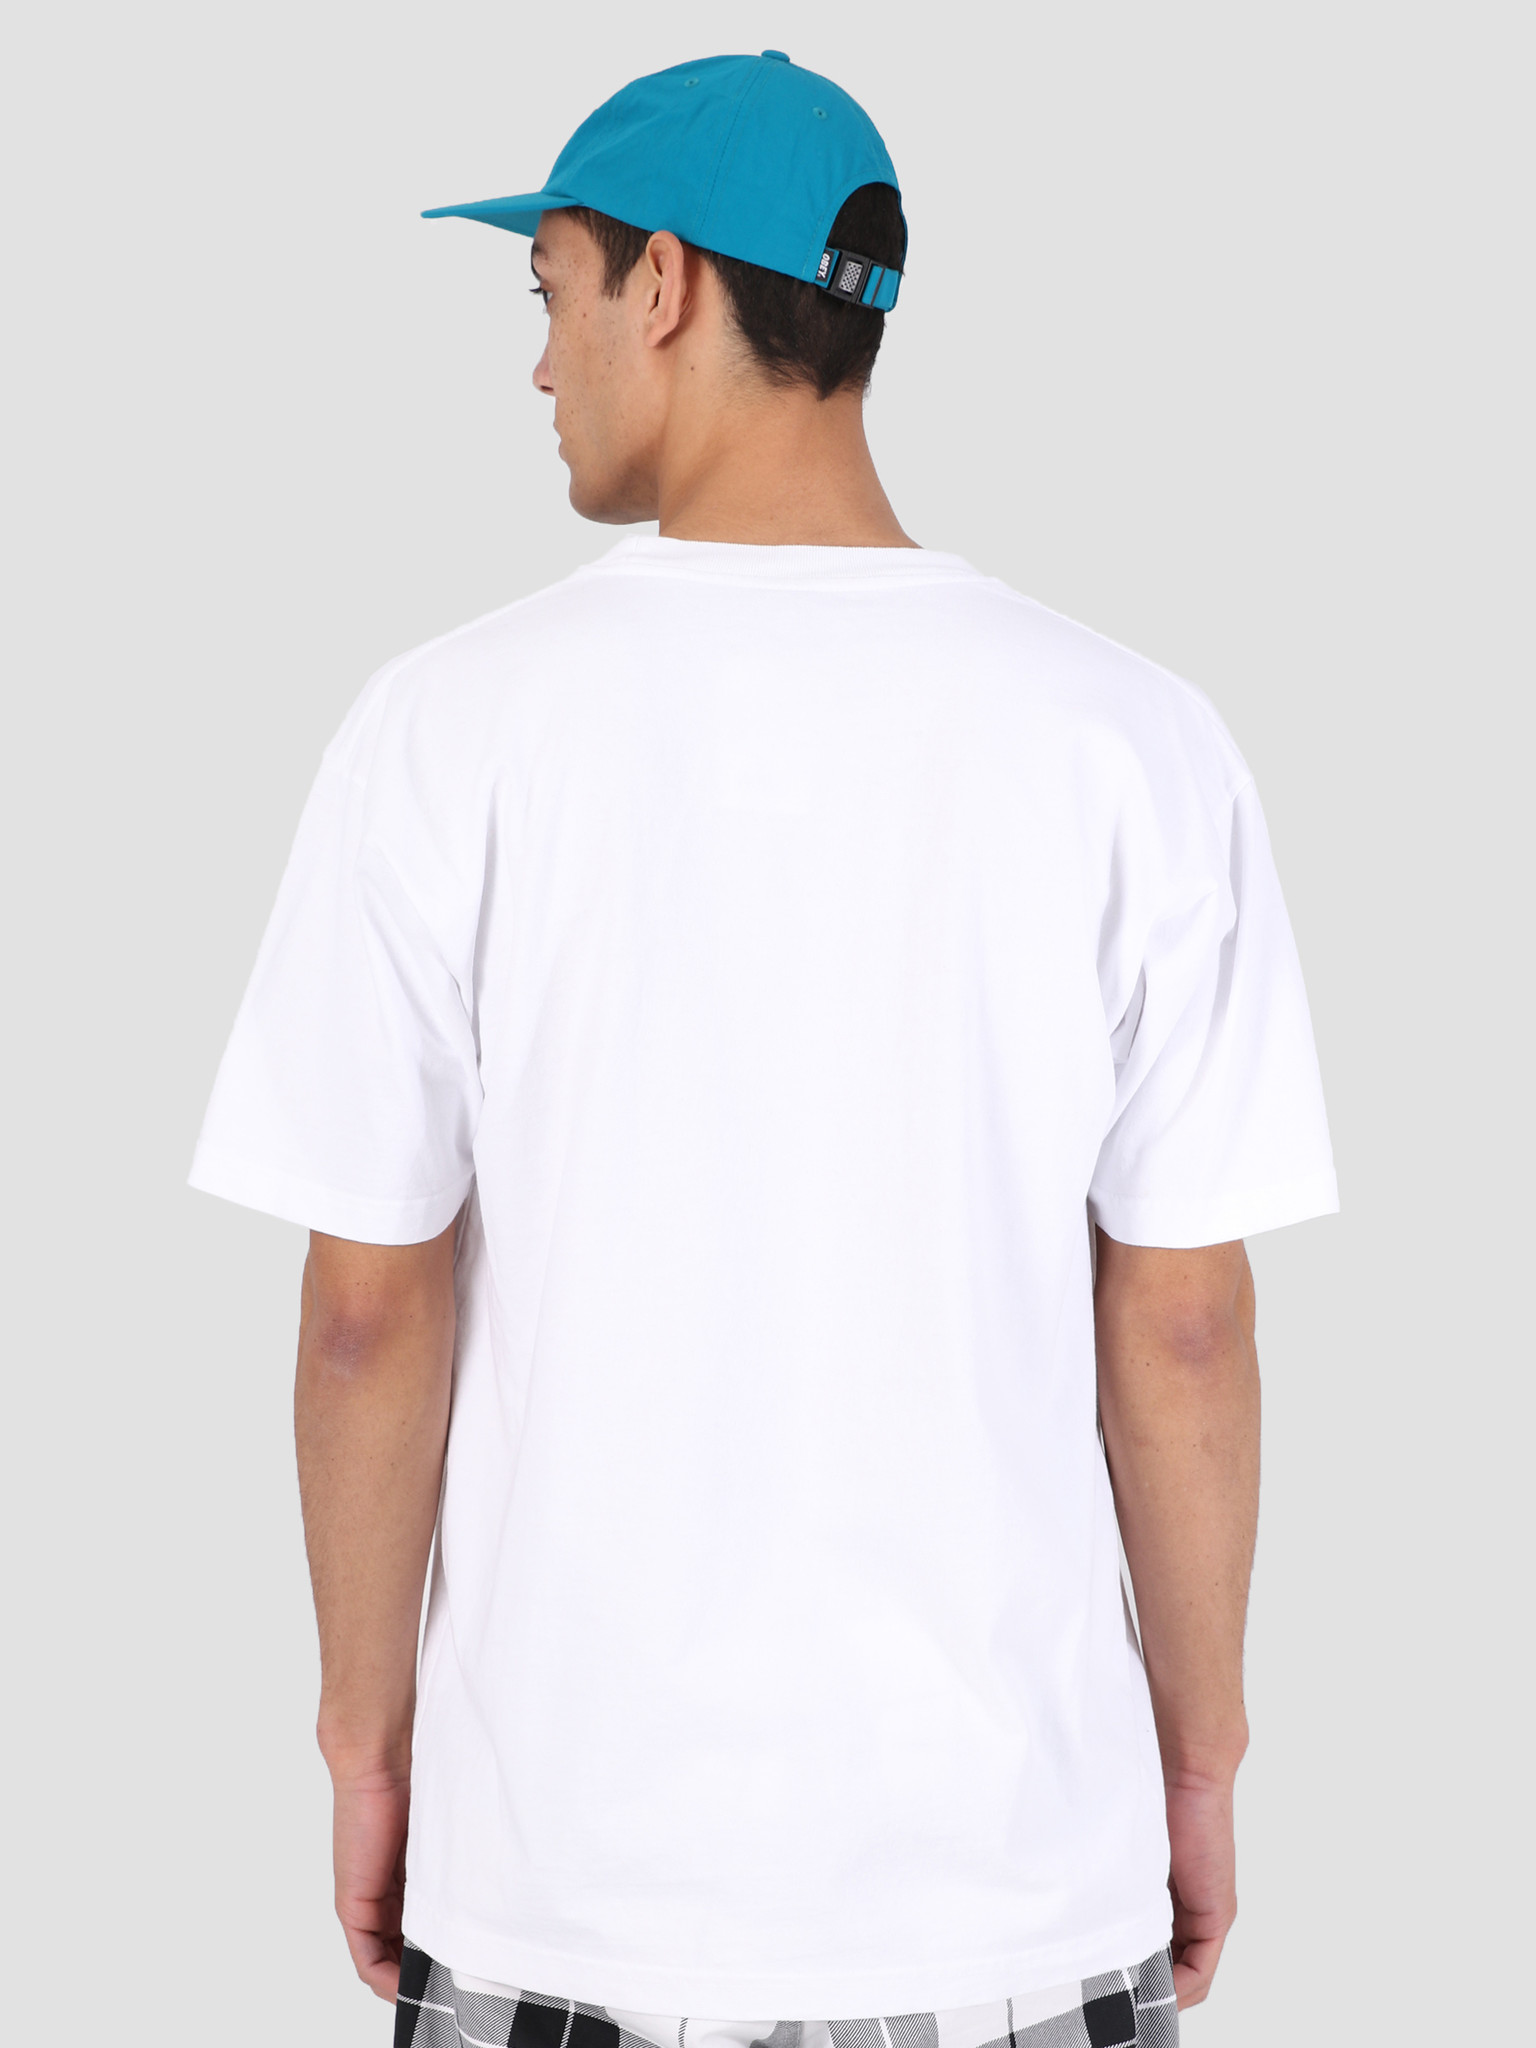 Obey Obey Transparent Obey T-Shirt WHT 166911904